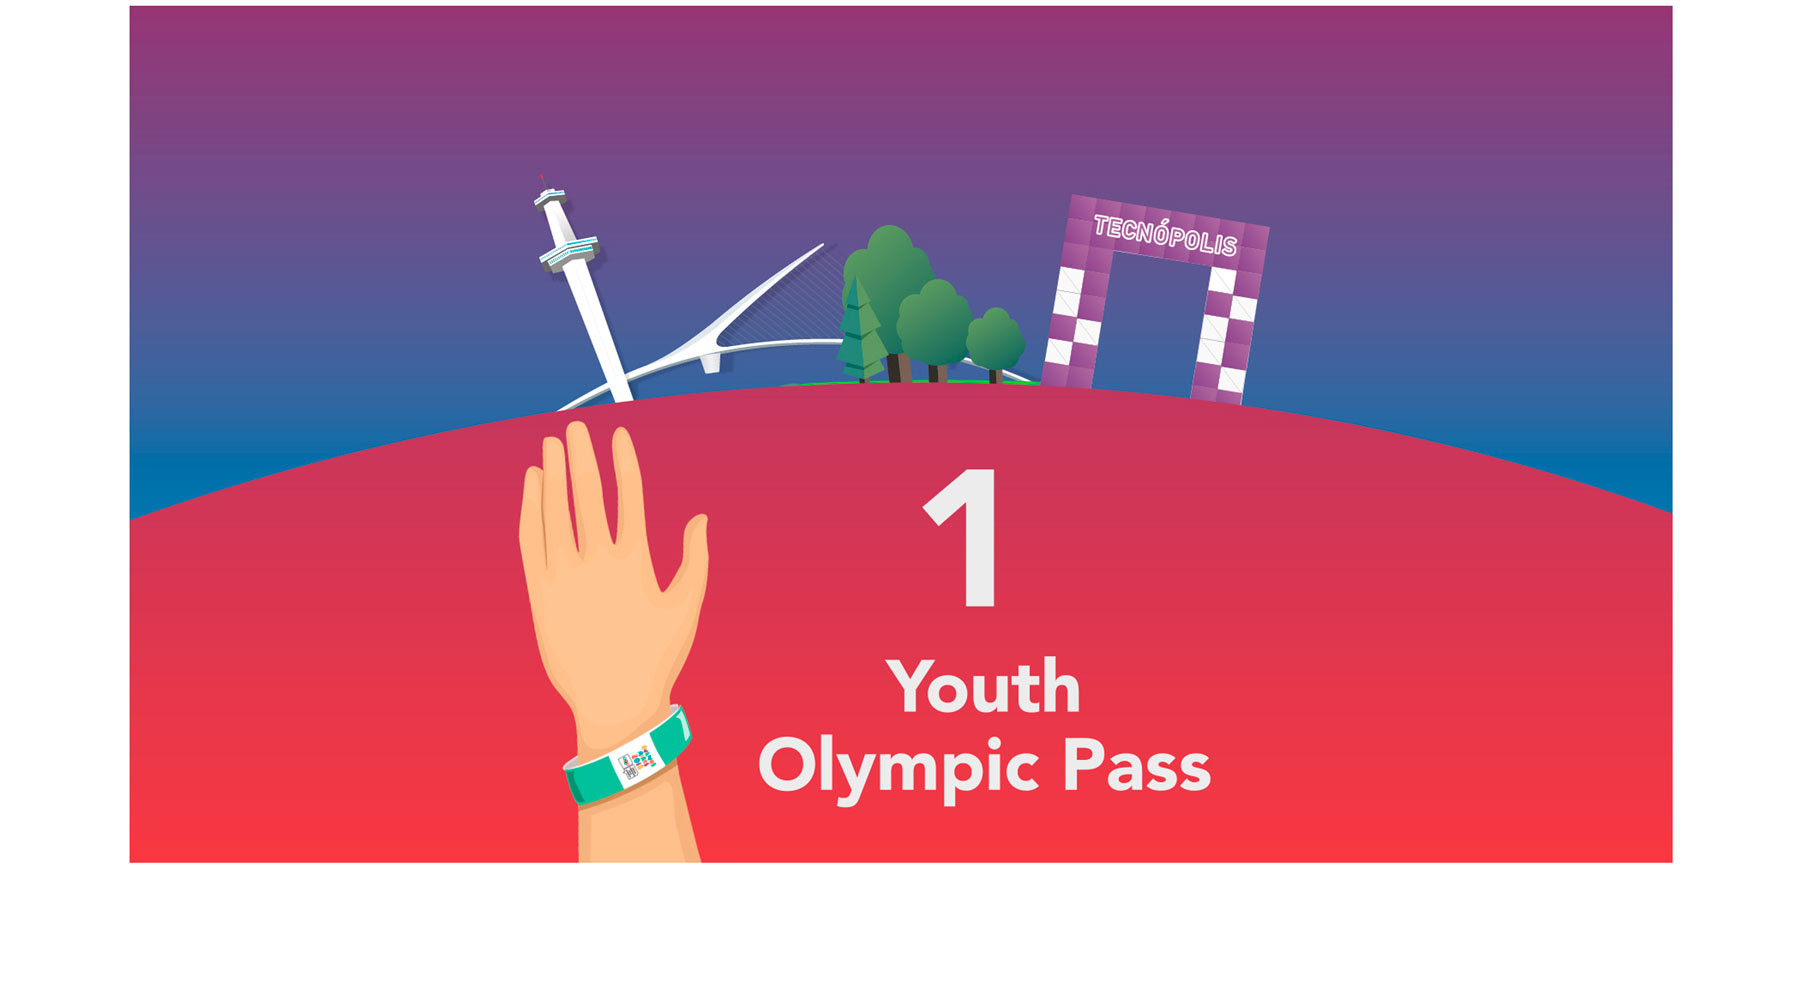 Buenos Aires 2018 to open Youth Olympic Pass registration on July 31